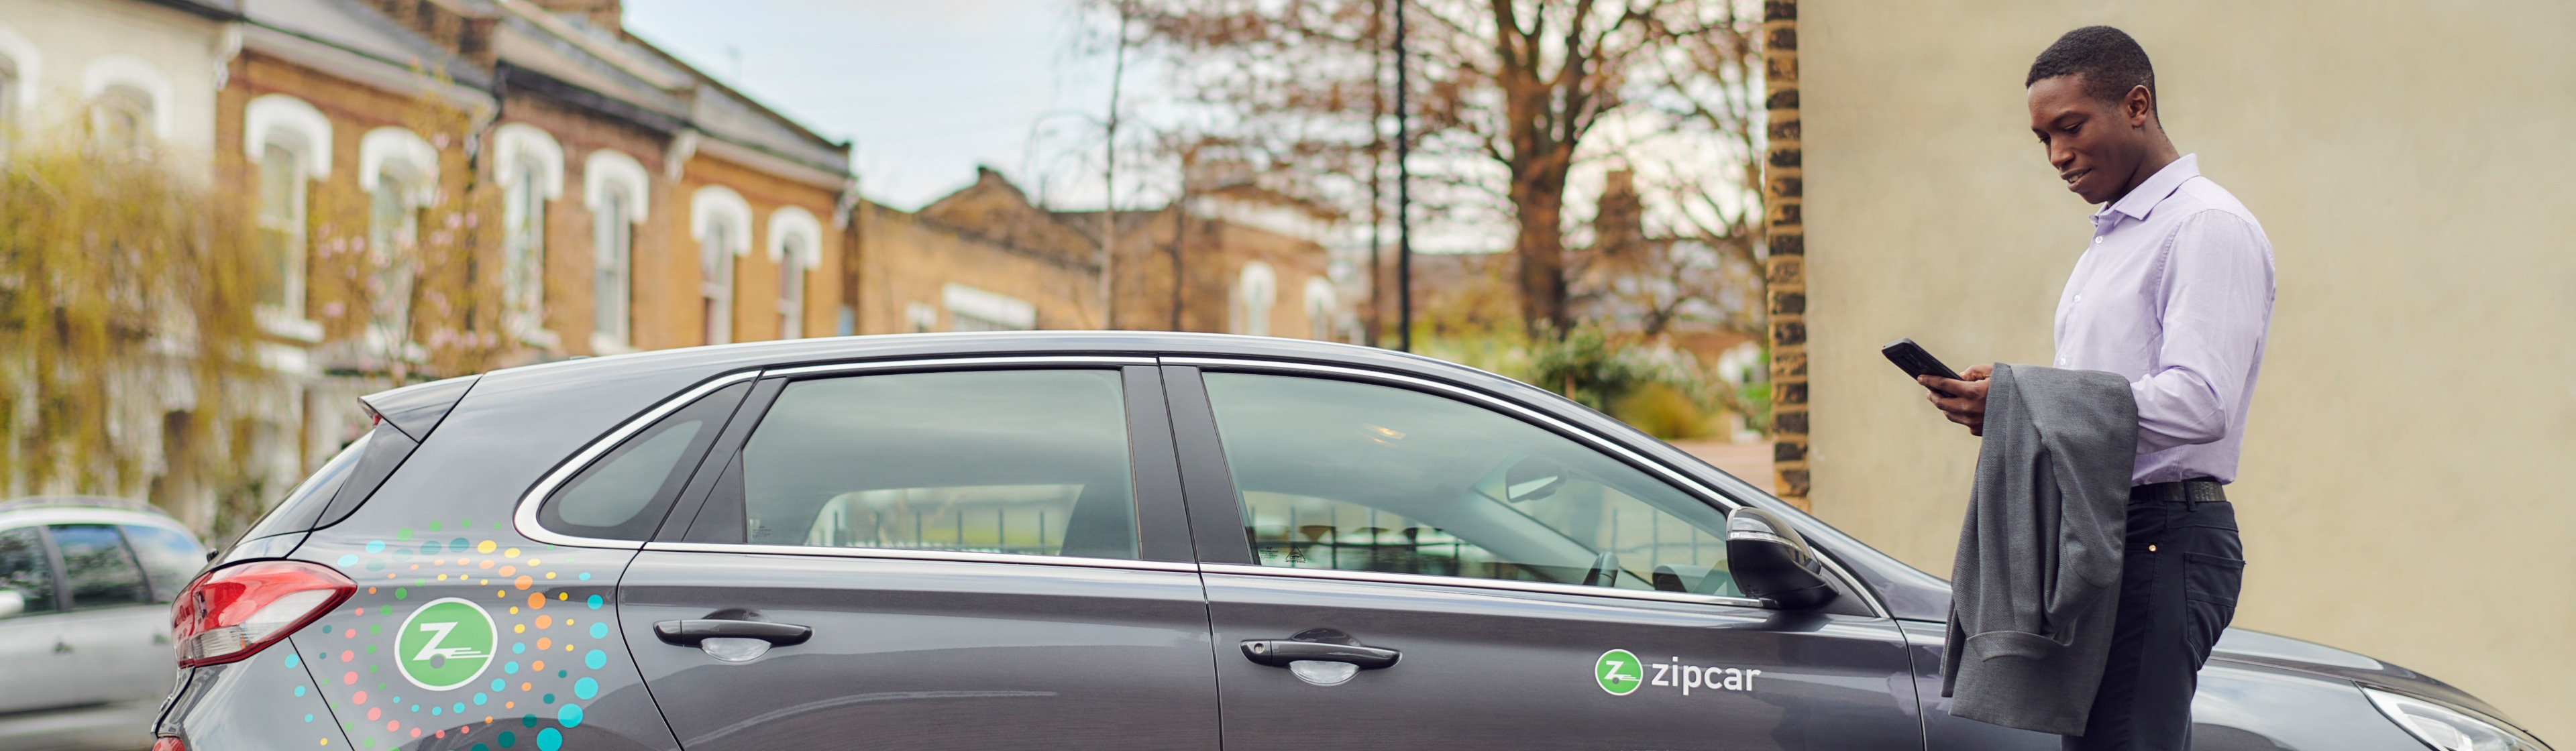 zipcar vs owning a car 50% cheaper